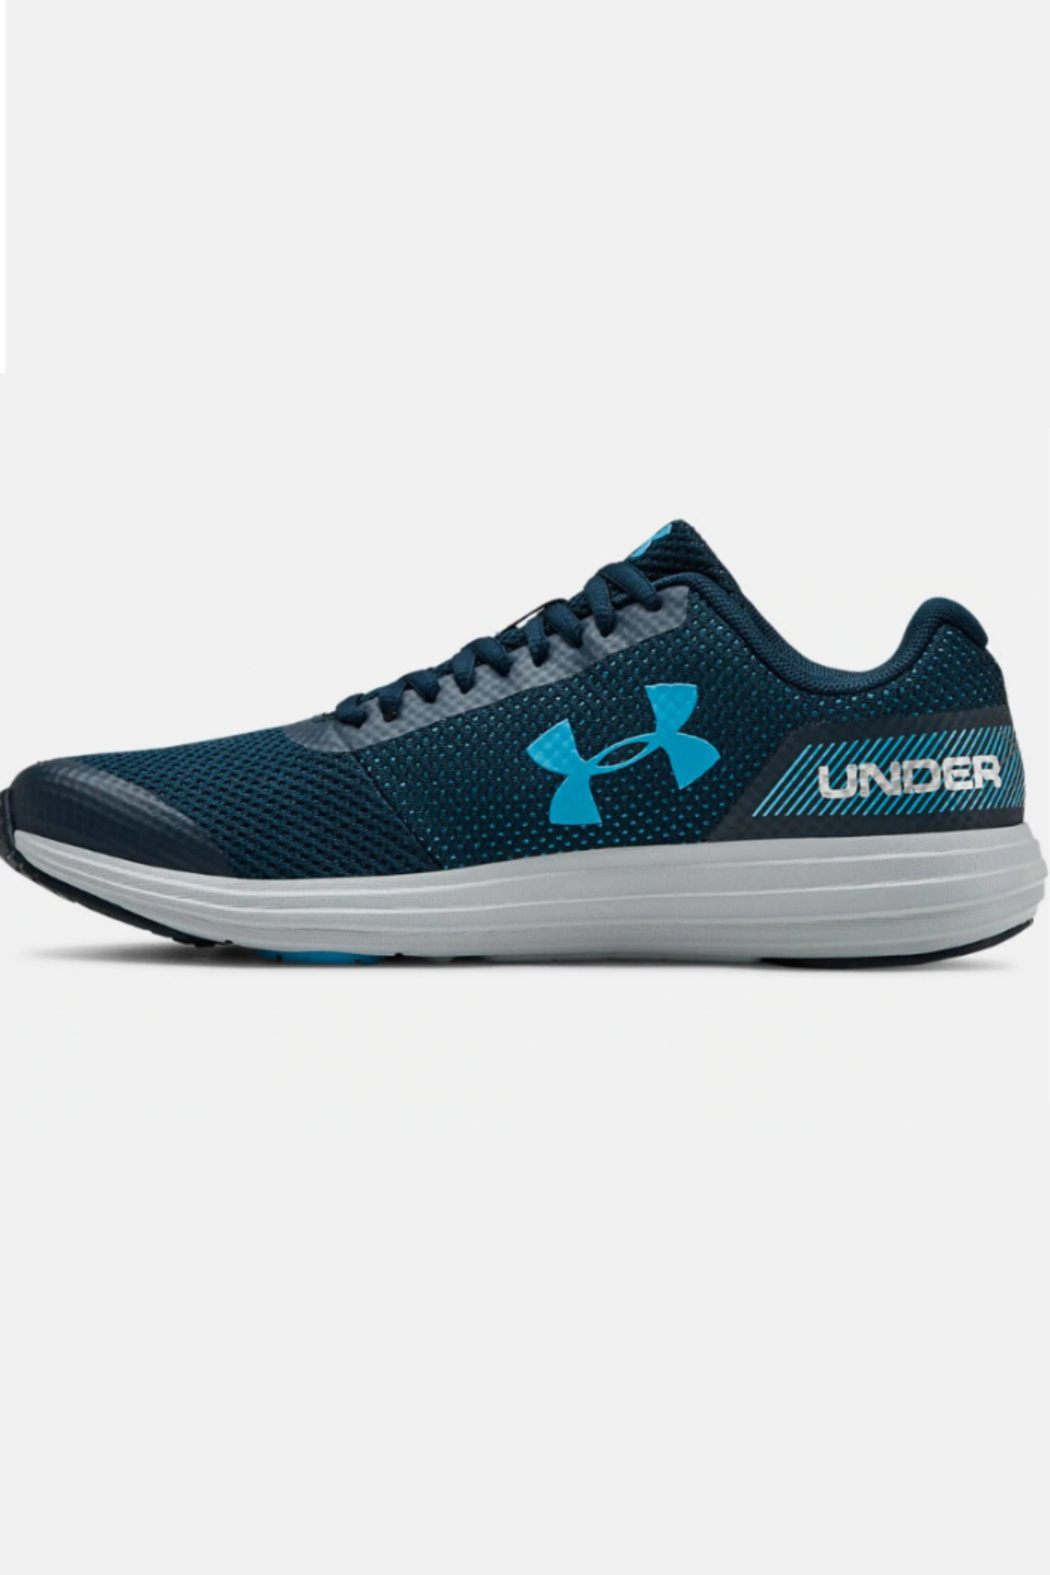 Under Armour UNDER ARMOUR BOYS SURGE - Front Full Image